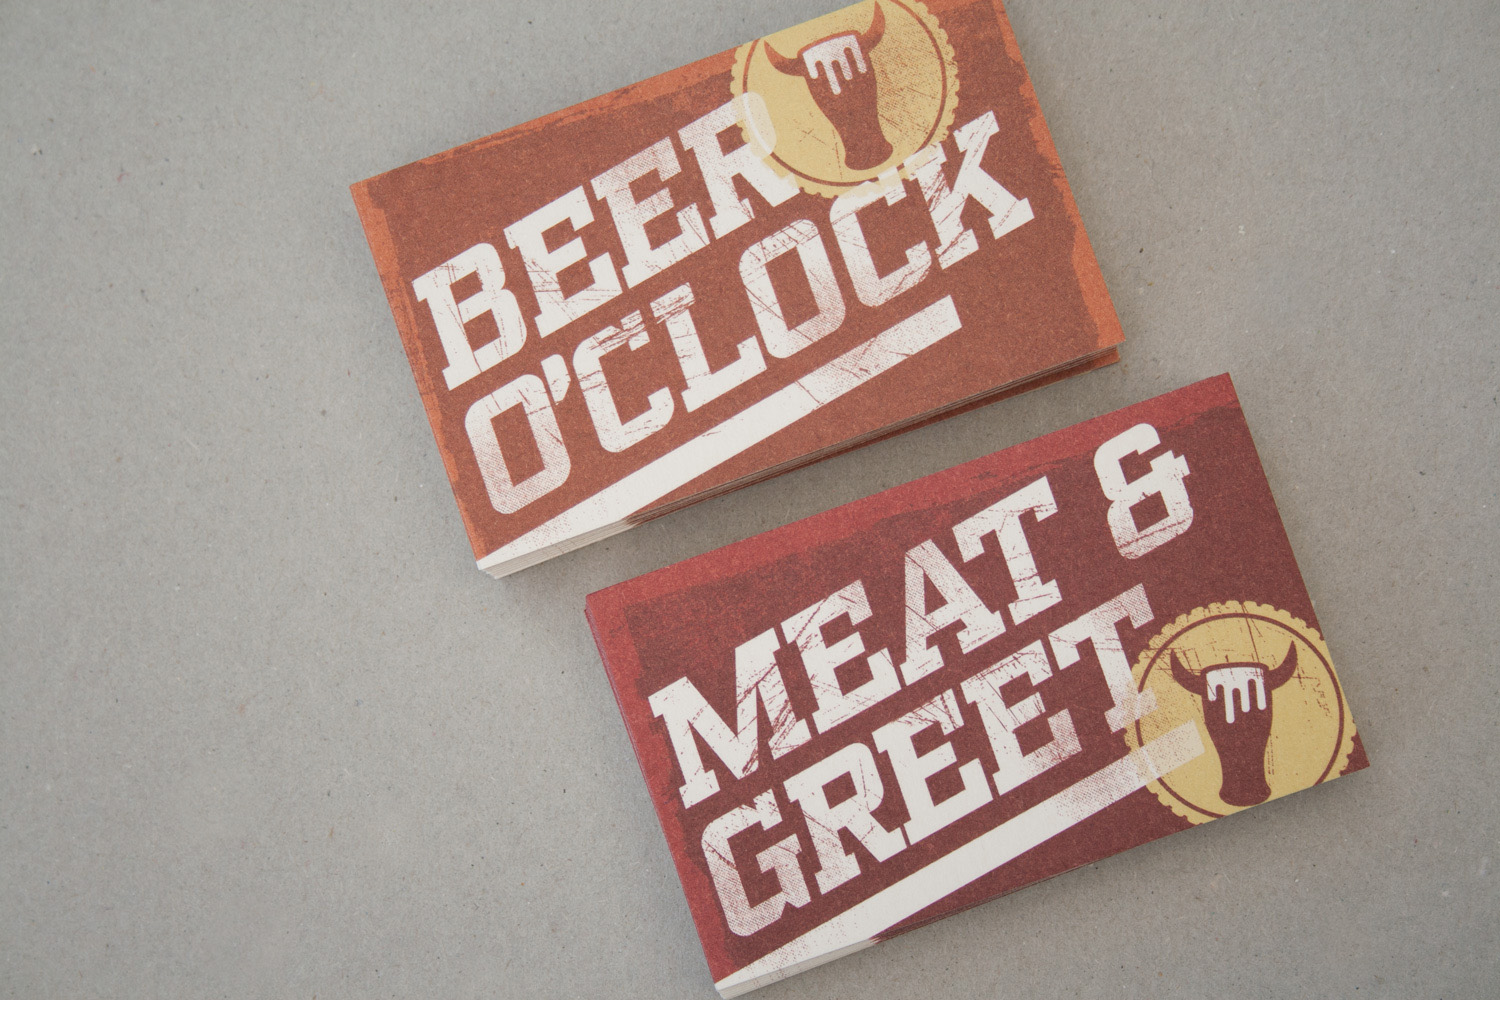 The Beer and burger lounge business card backs